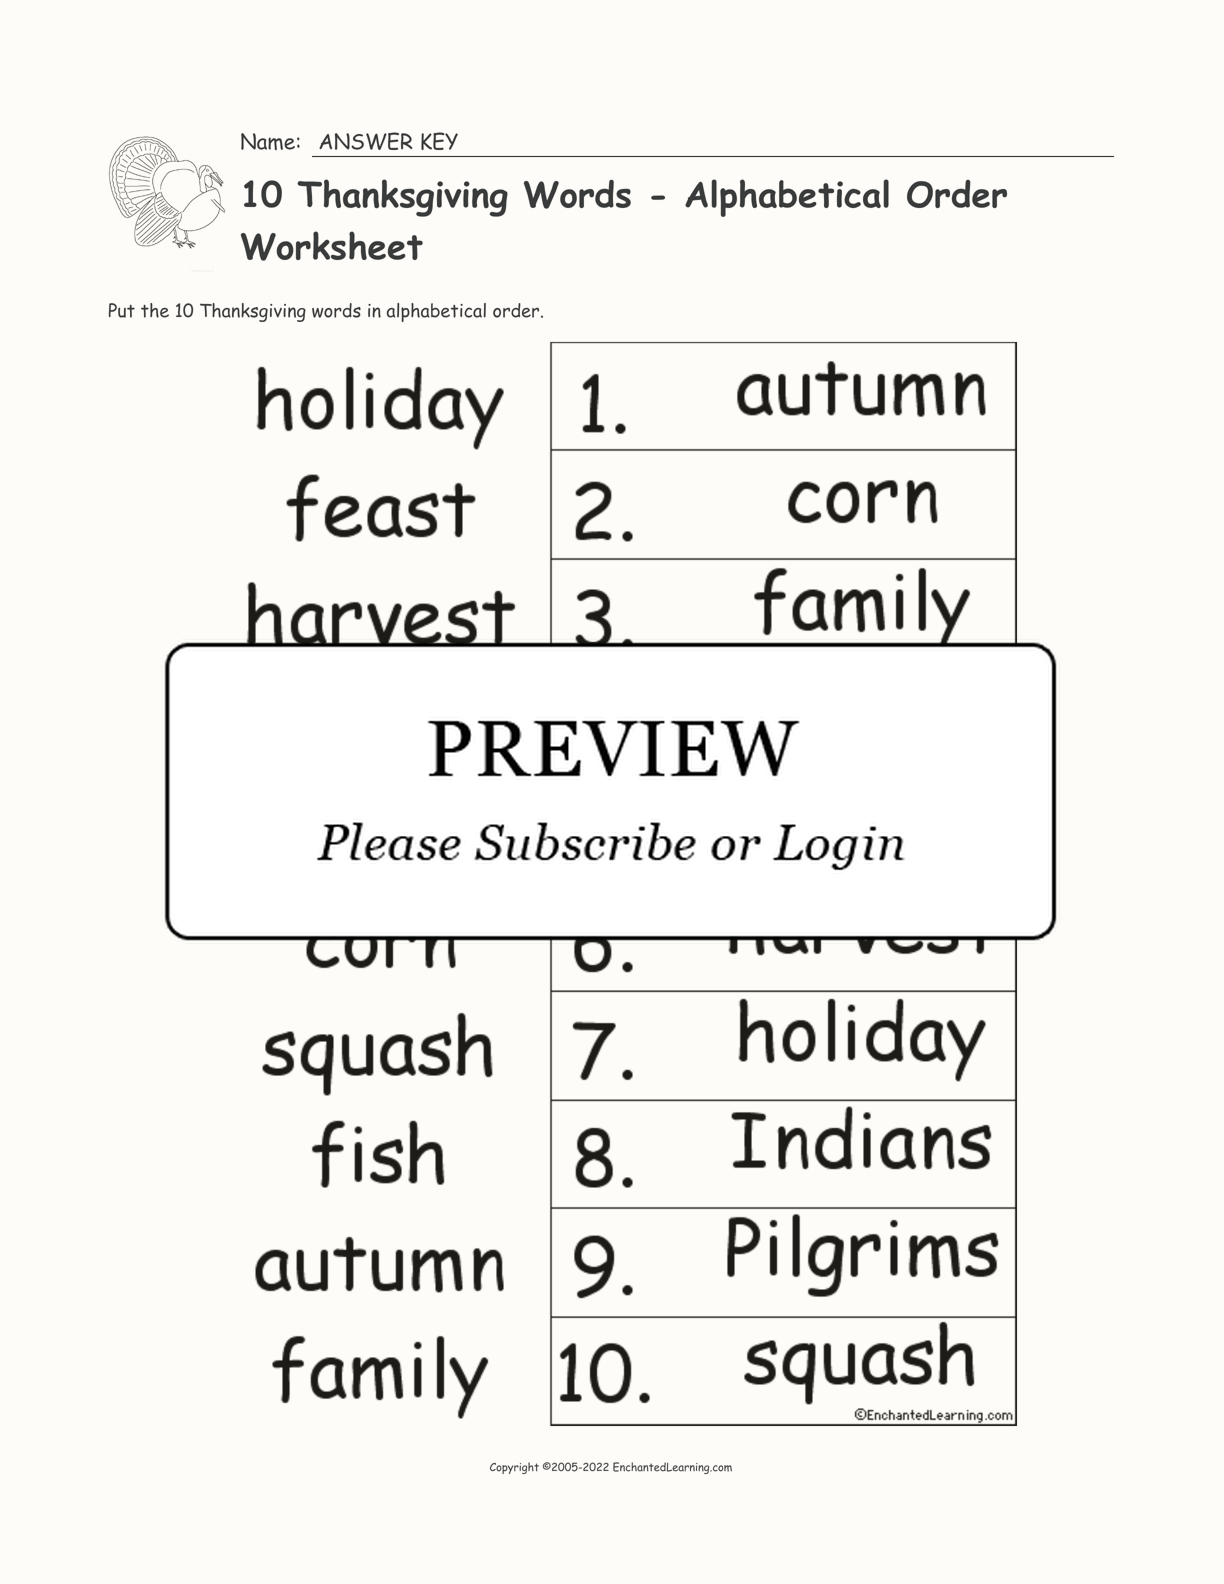 10 Thanksgiving Words